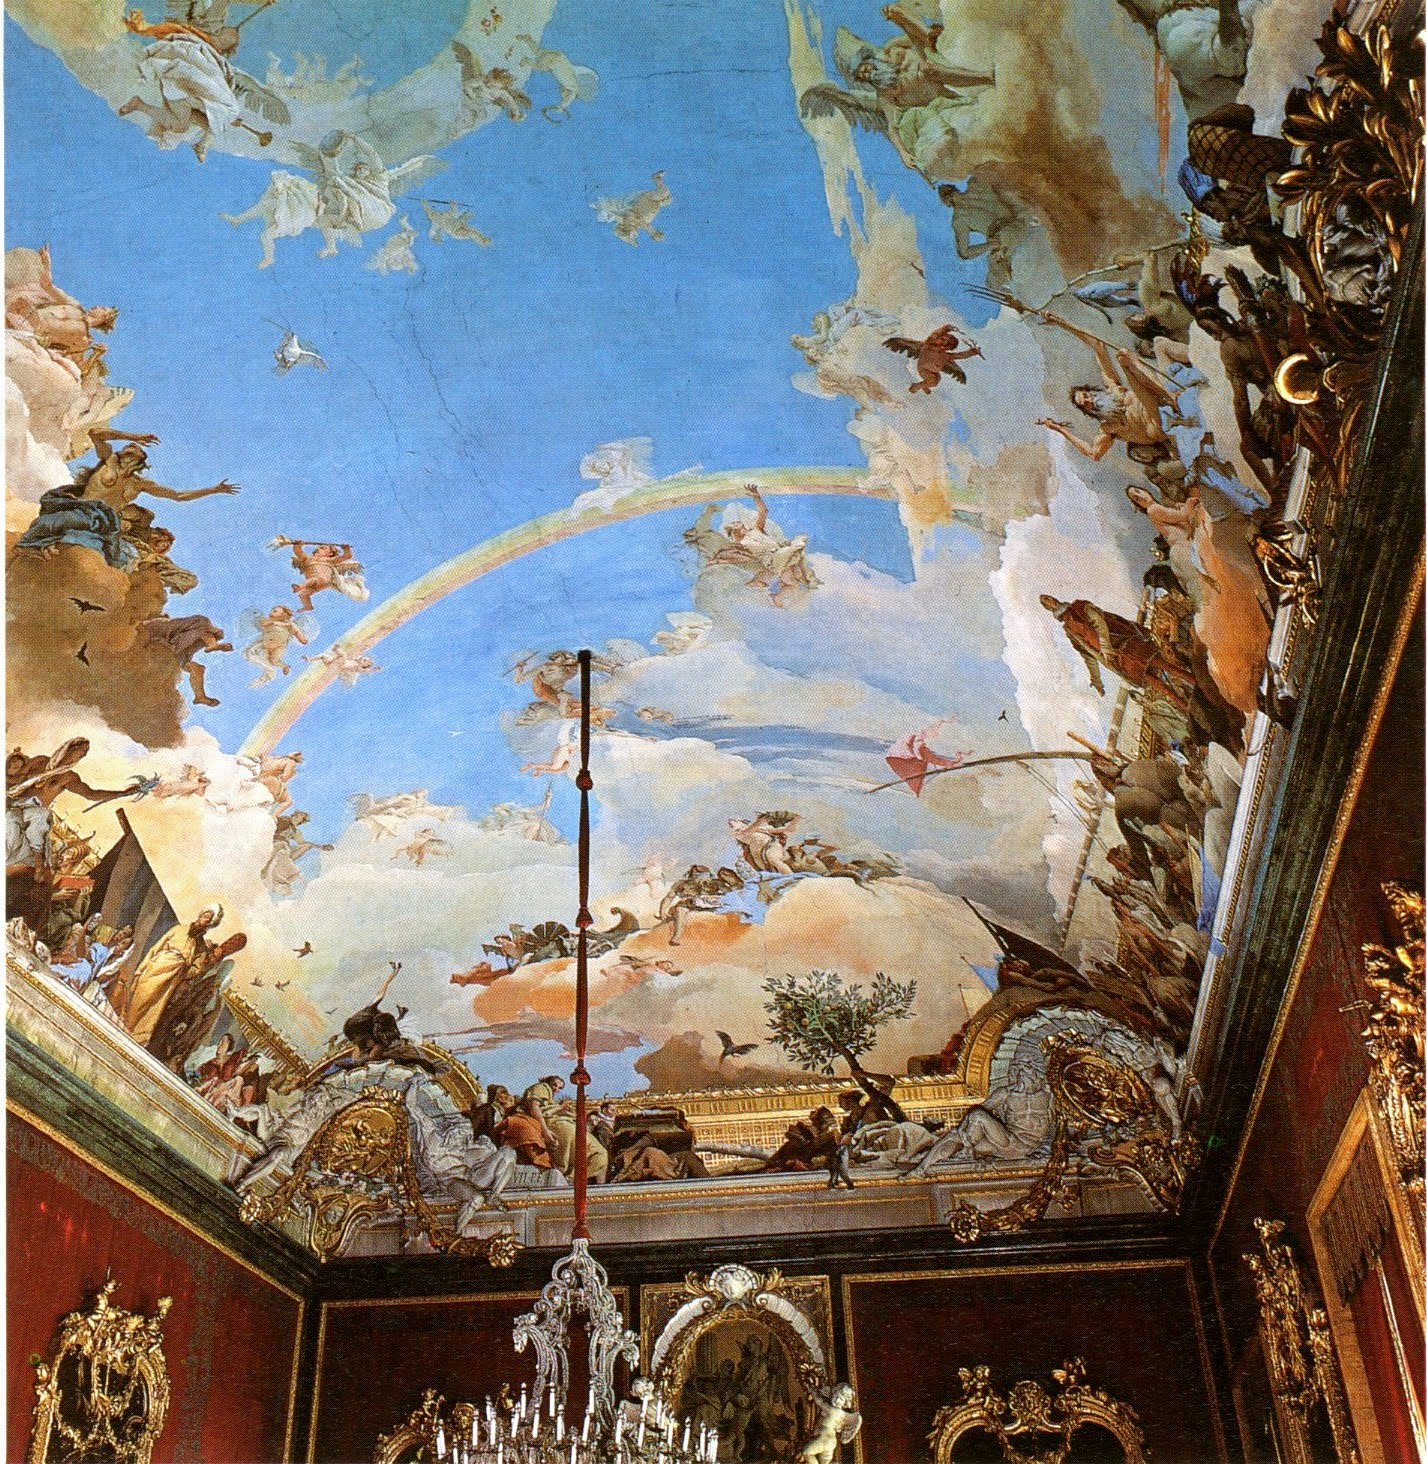 cityzenart: Tiepolo ceiling paintings